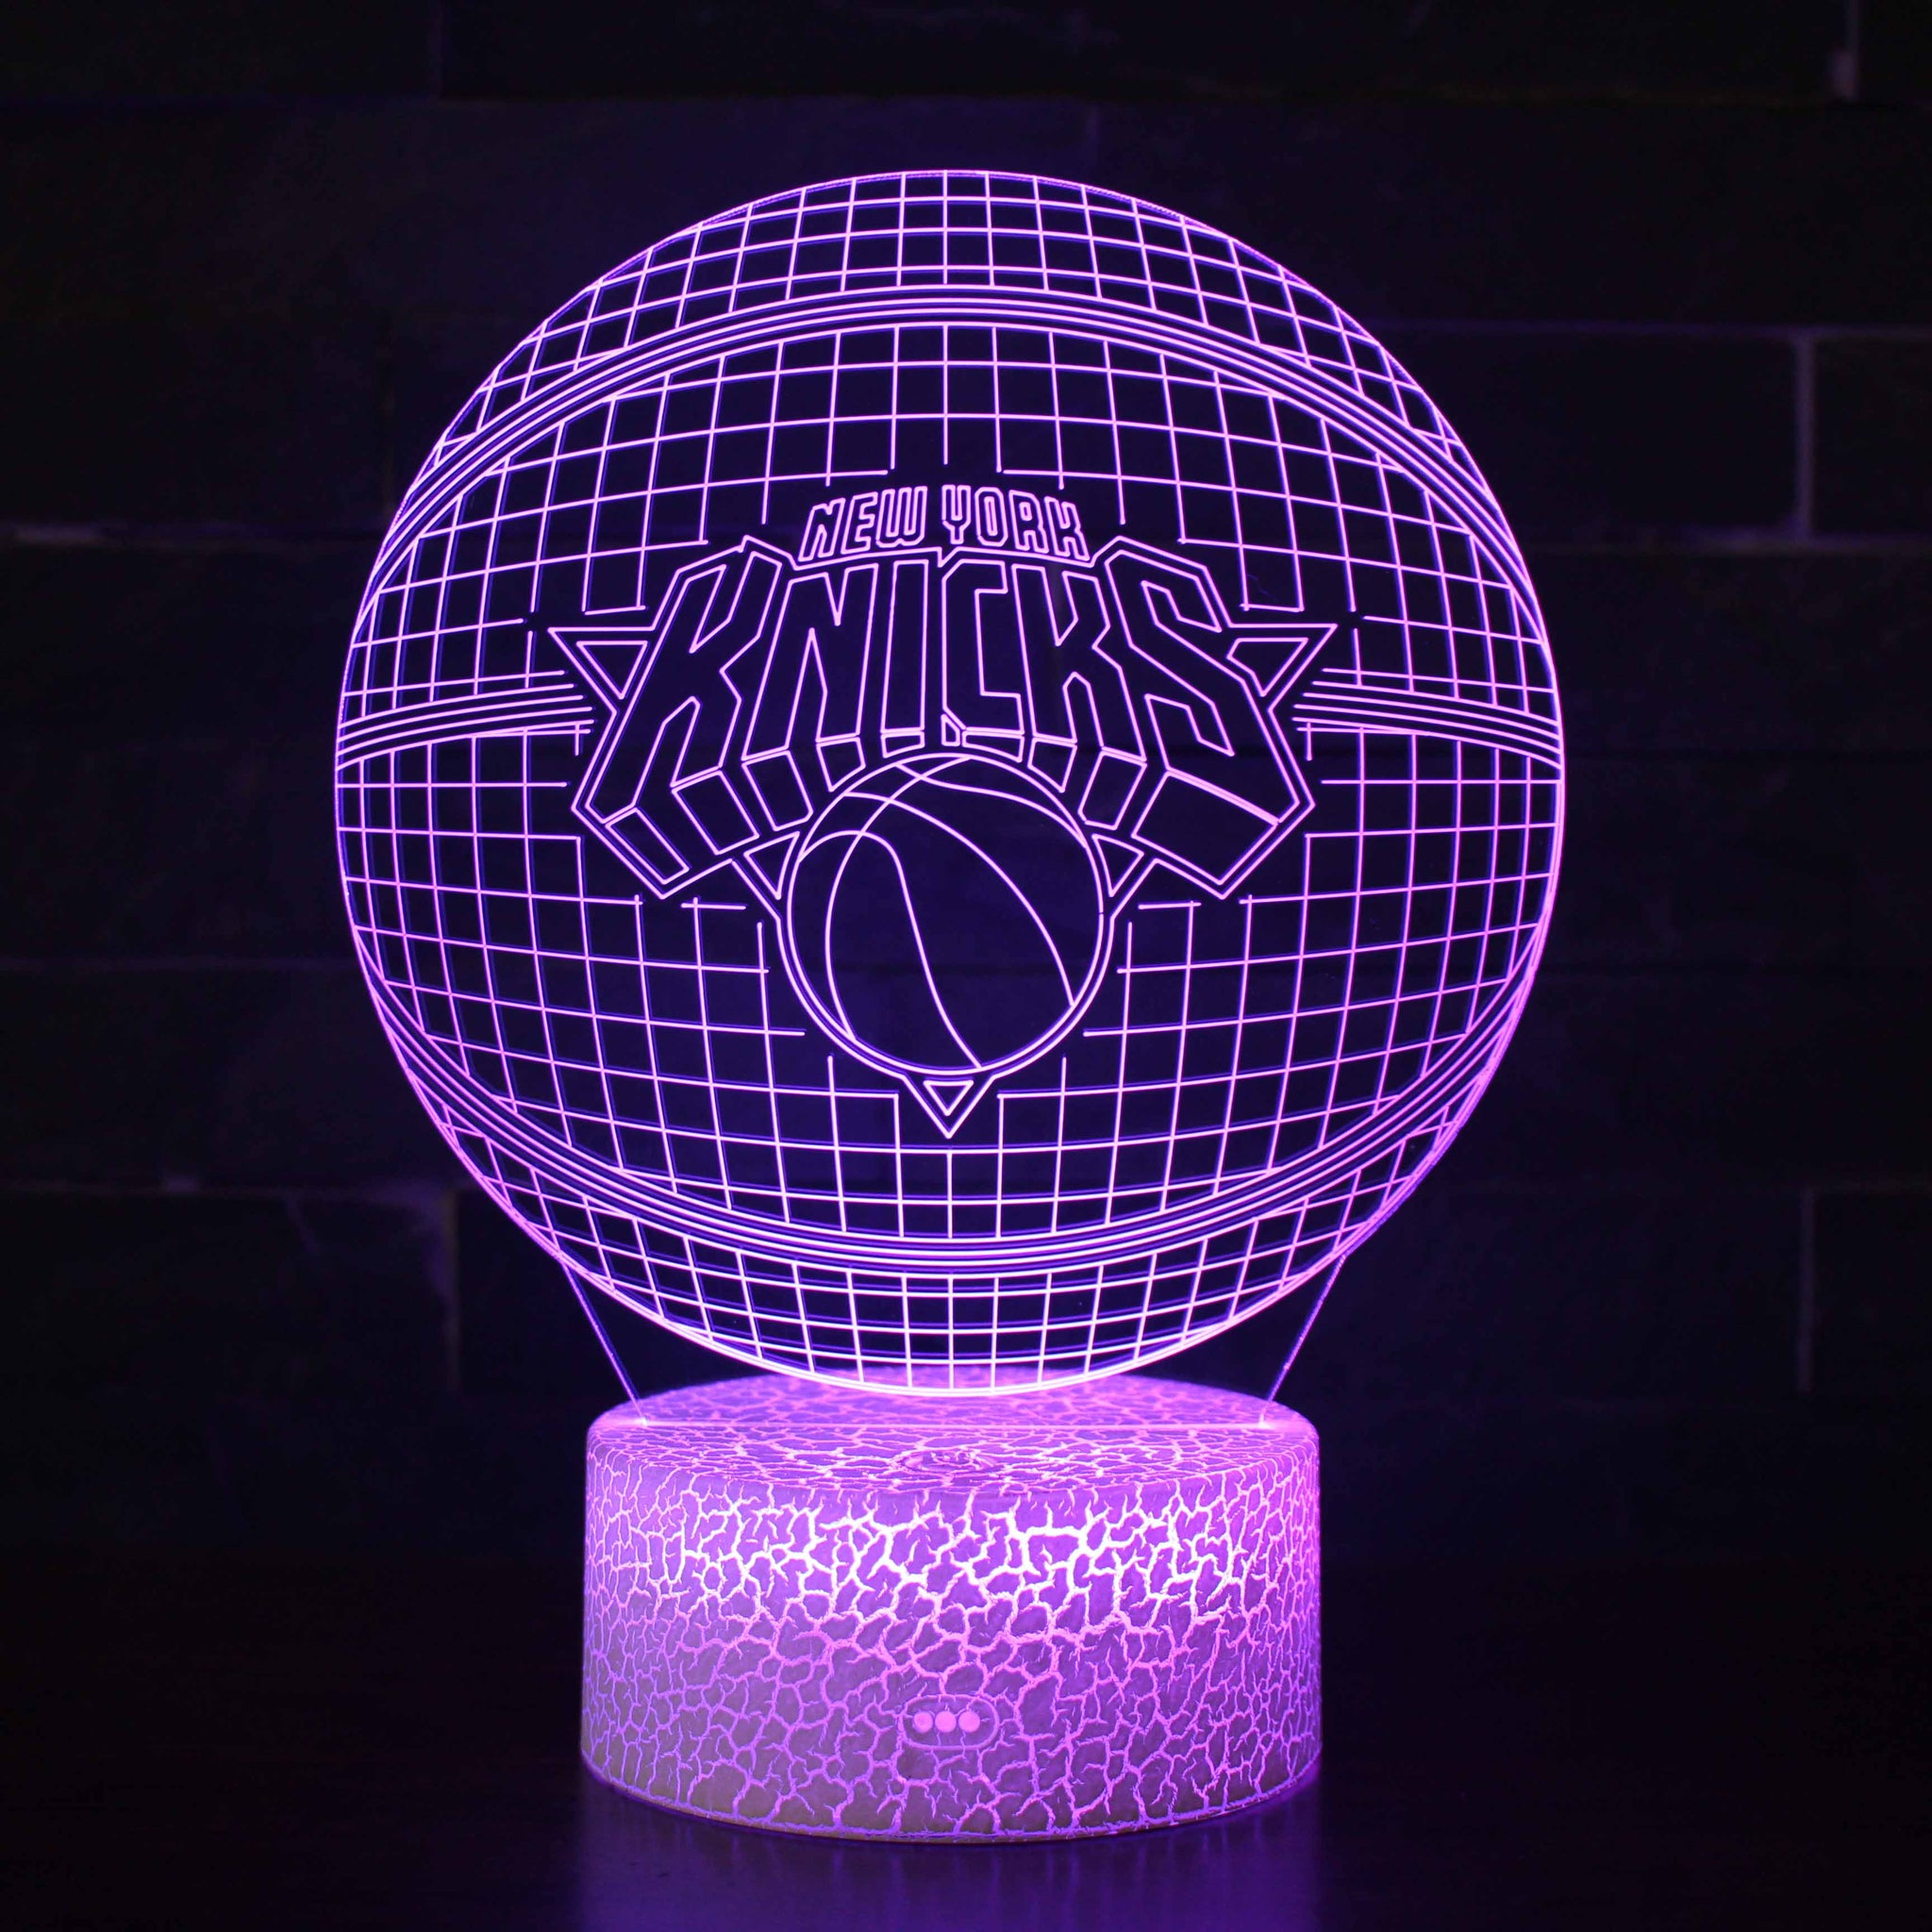 Sacramento Kings NBA Basketball Team 3D Night Light